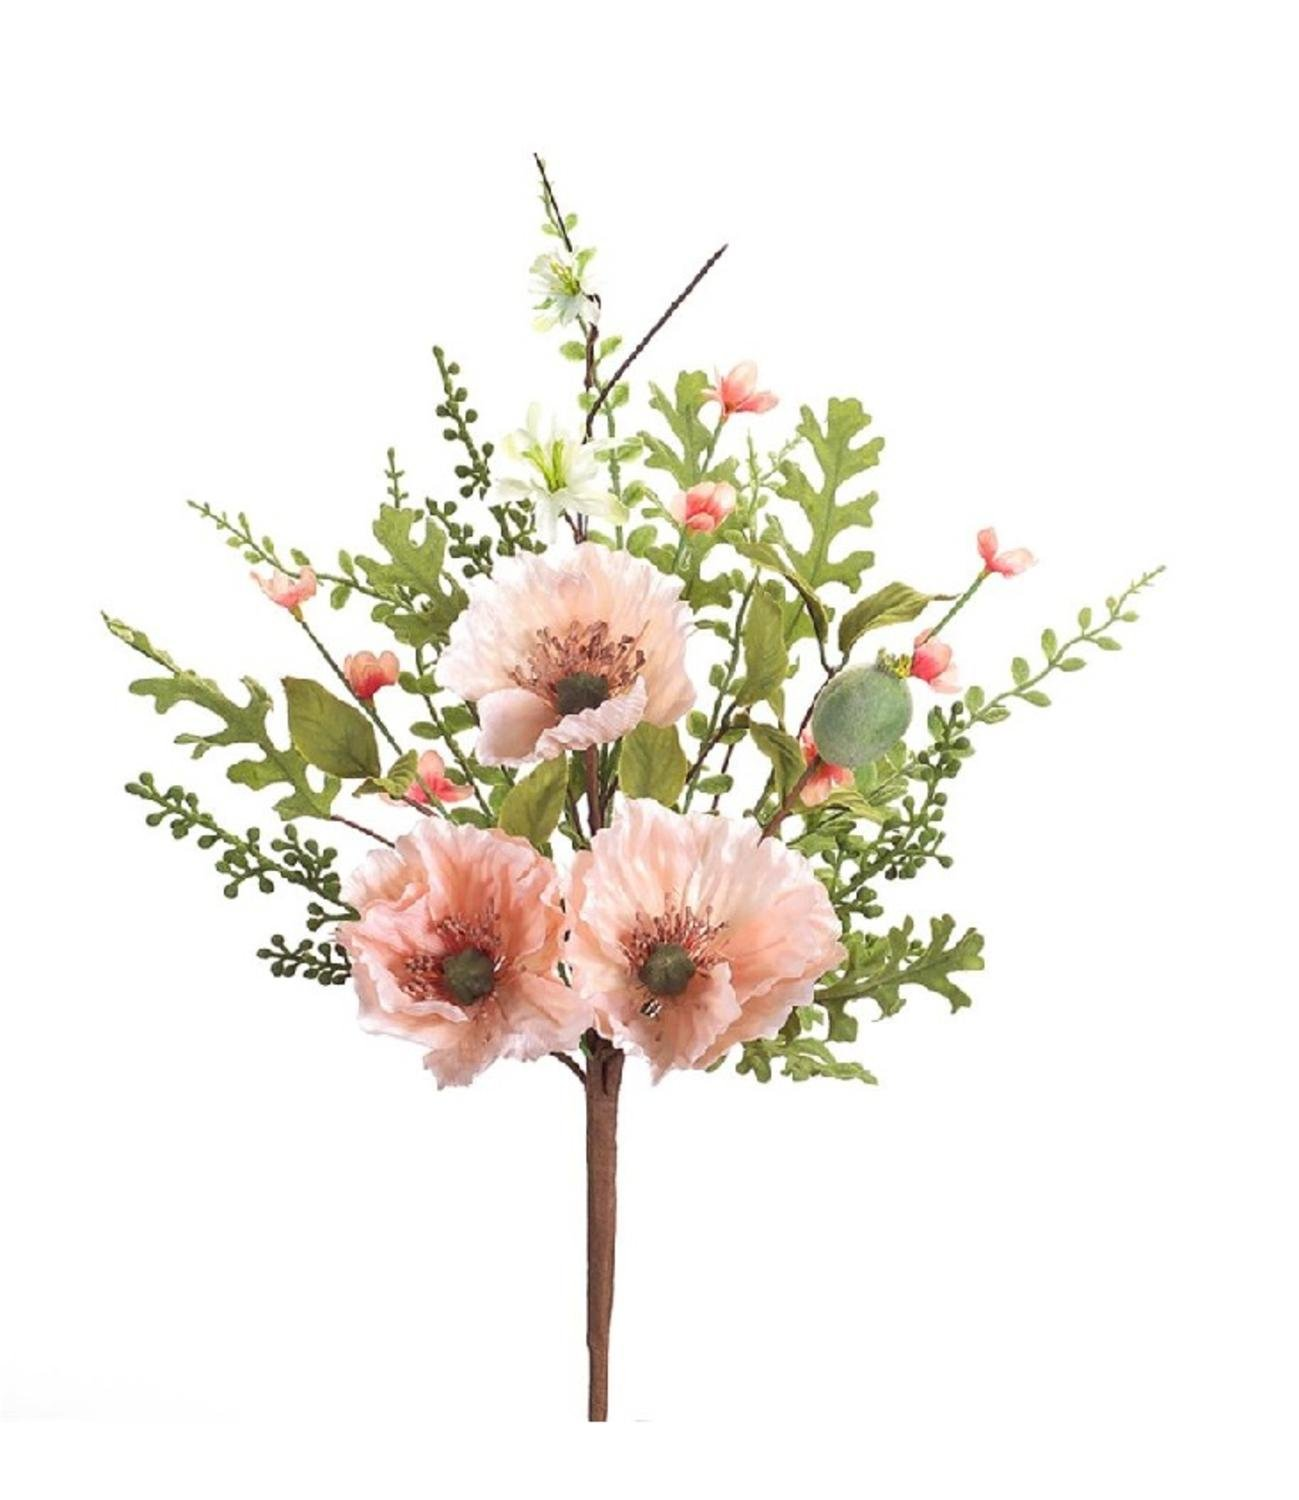 Pack of 12春夏ピンクPoppy Flowers with Green Foliage Sprays 23